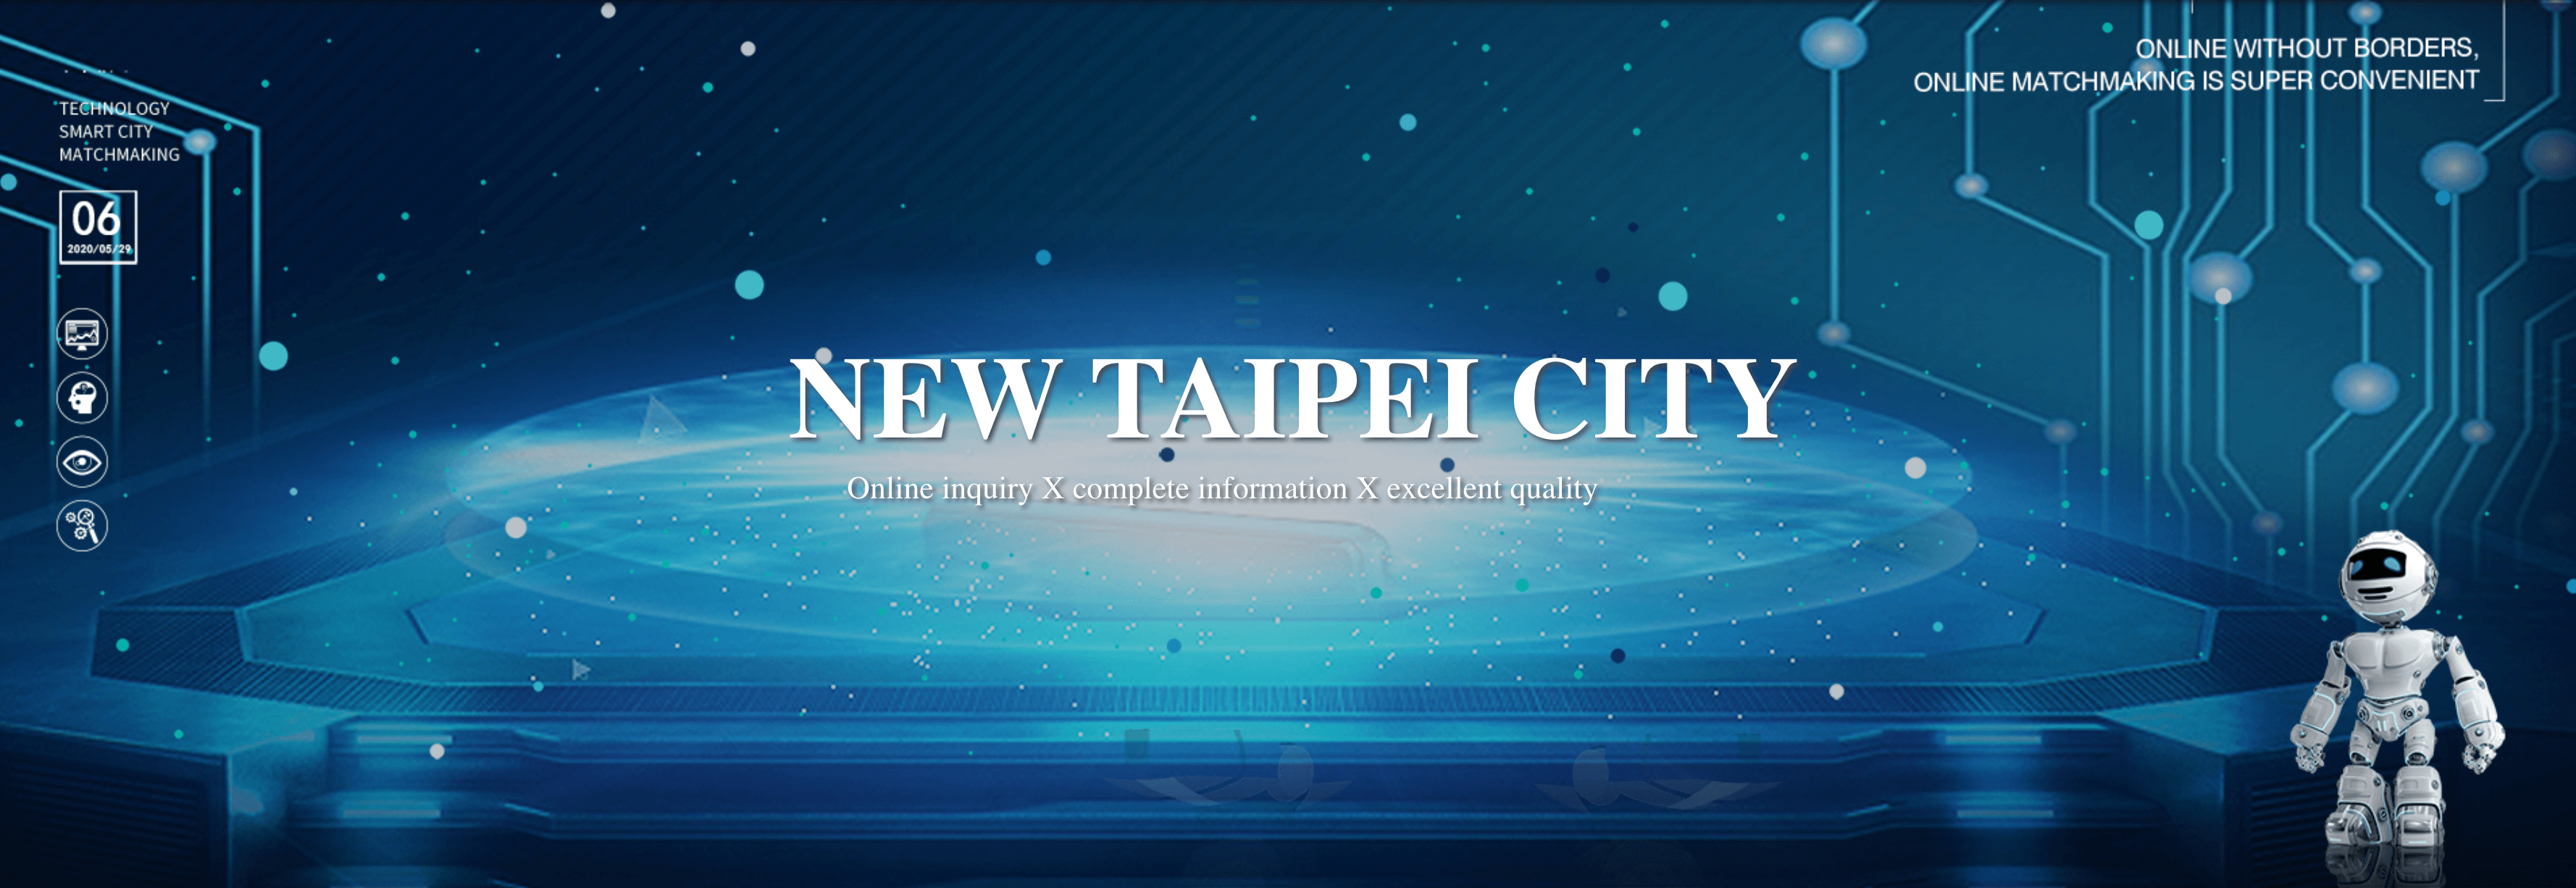 New Taipei City Match Making_Midas Touch